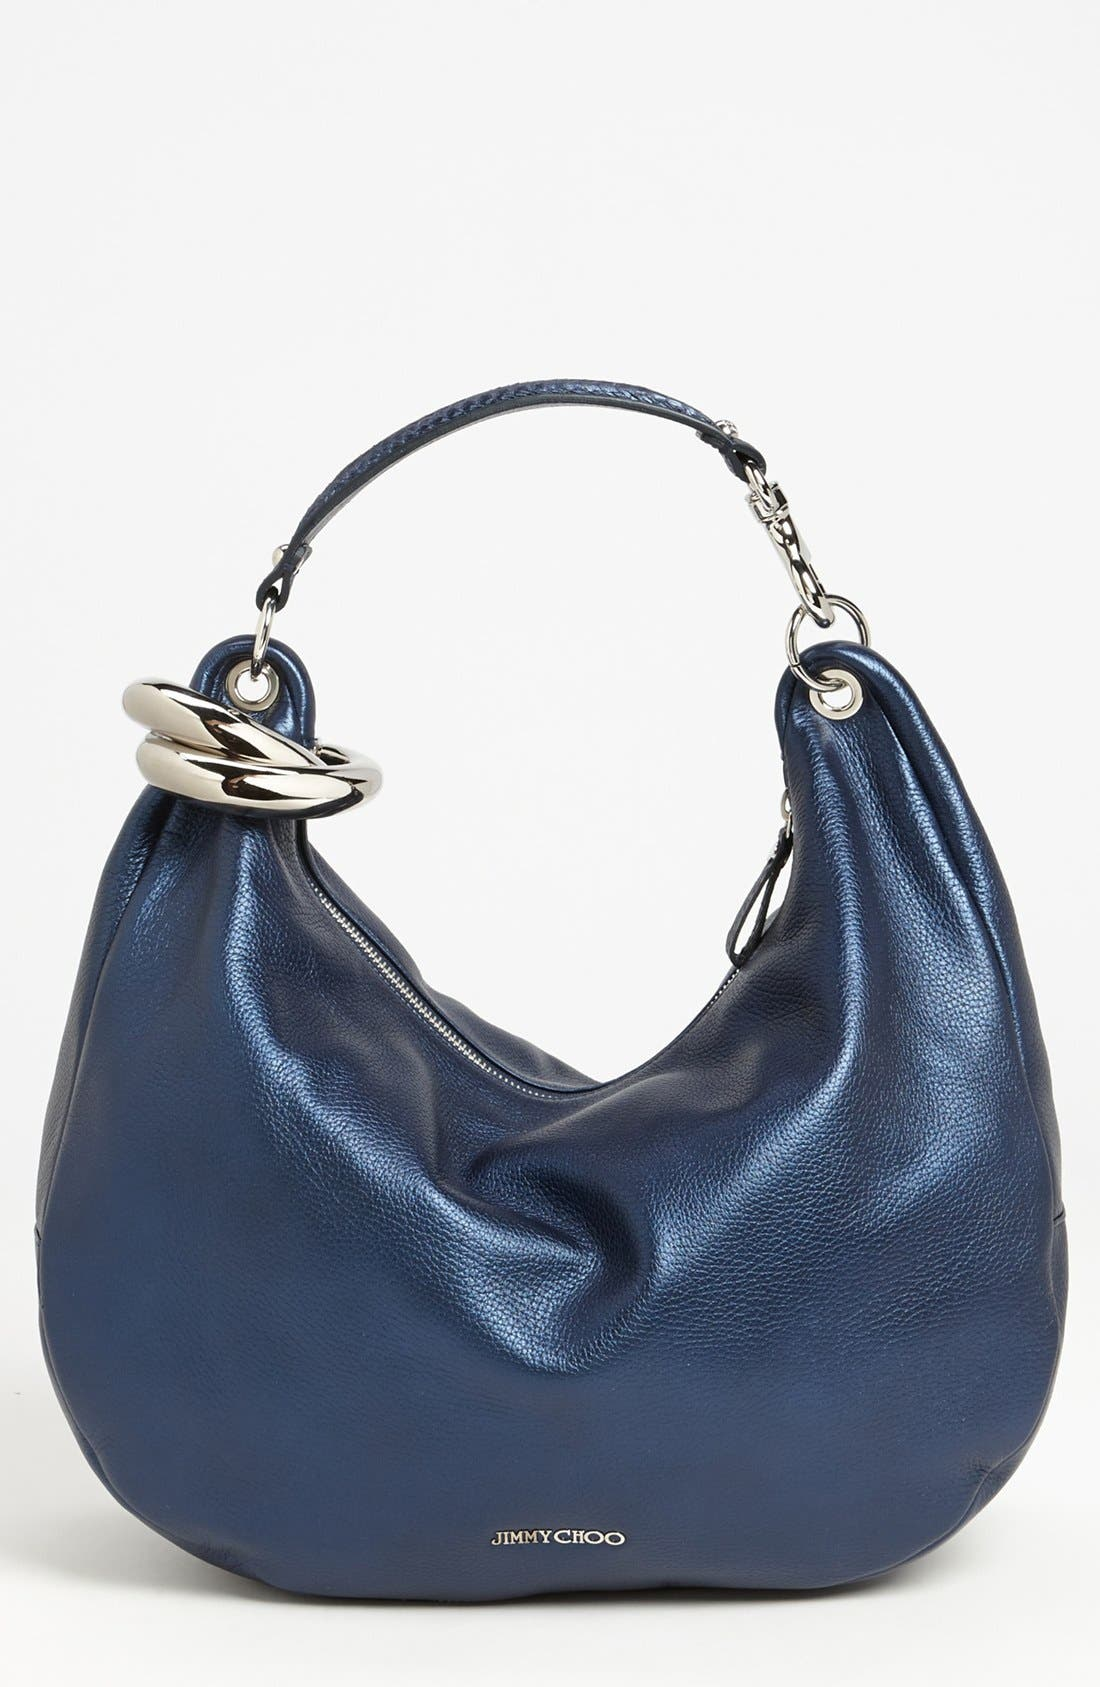 Alternate Image 1 Selected - Jimmy Choo 'Solar - Large' Pearlized Metallic Leather Hobo